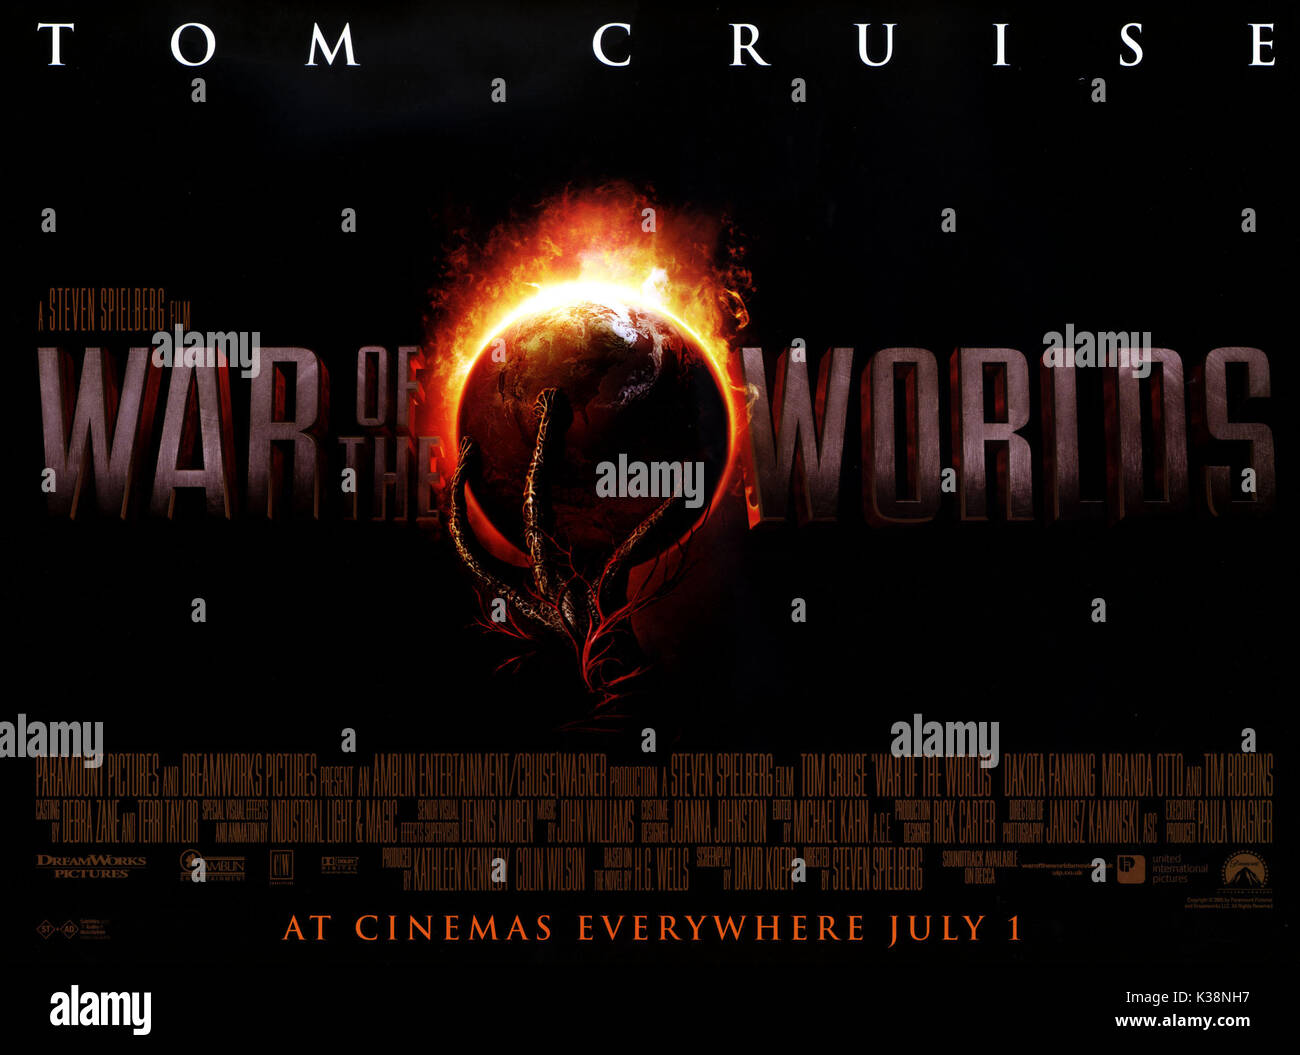 War Of The Worlds Poster Date 2005 Stock Photo 156929843 Alamy